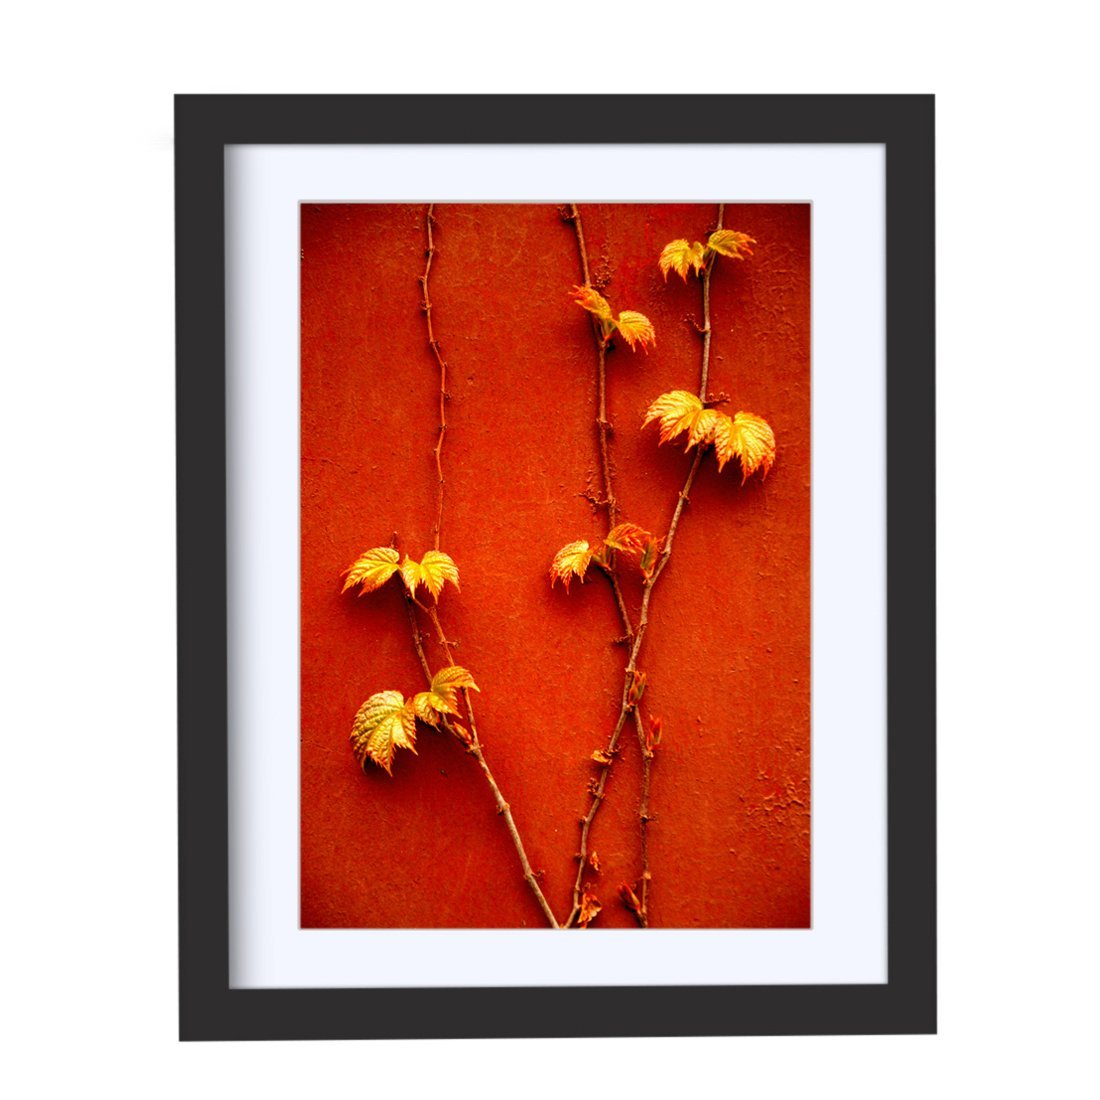 Cheap 10x13 Photo Frames Find 10x13 Photo Frames Deals On Line At